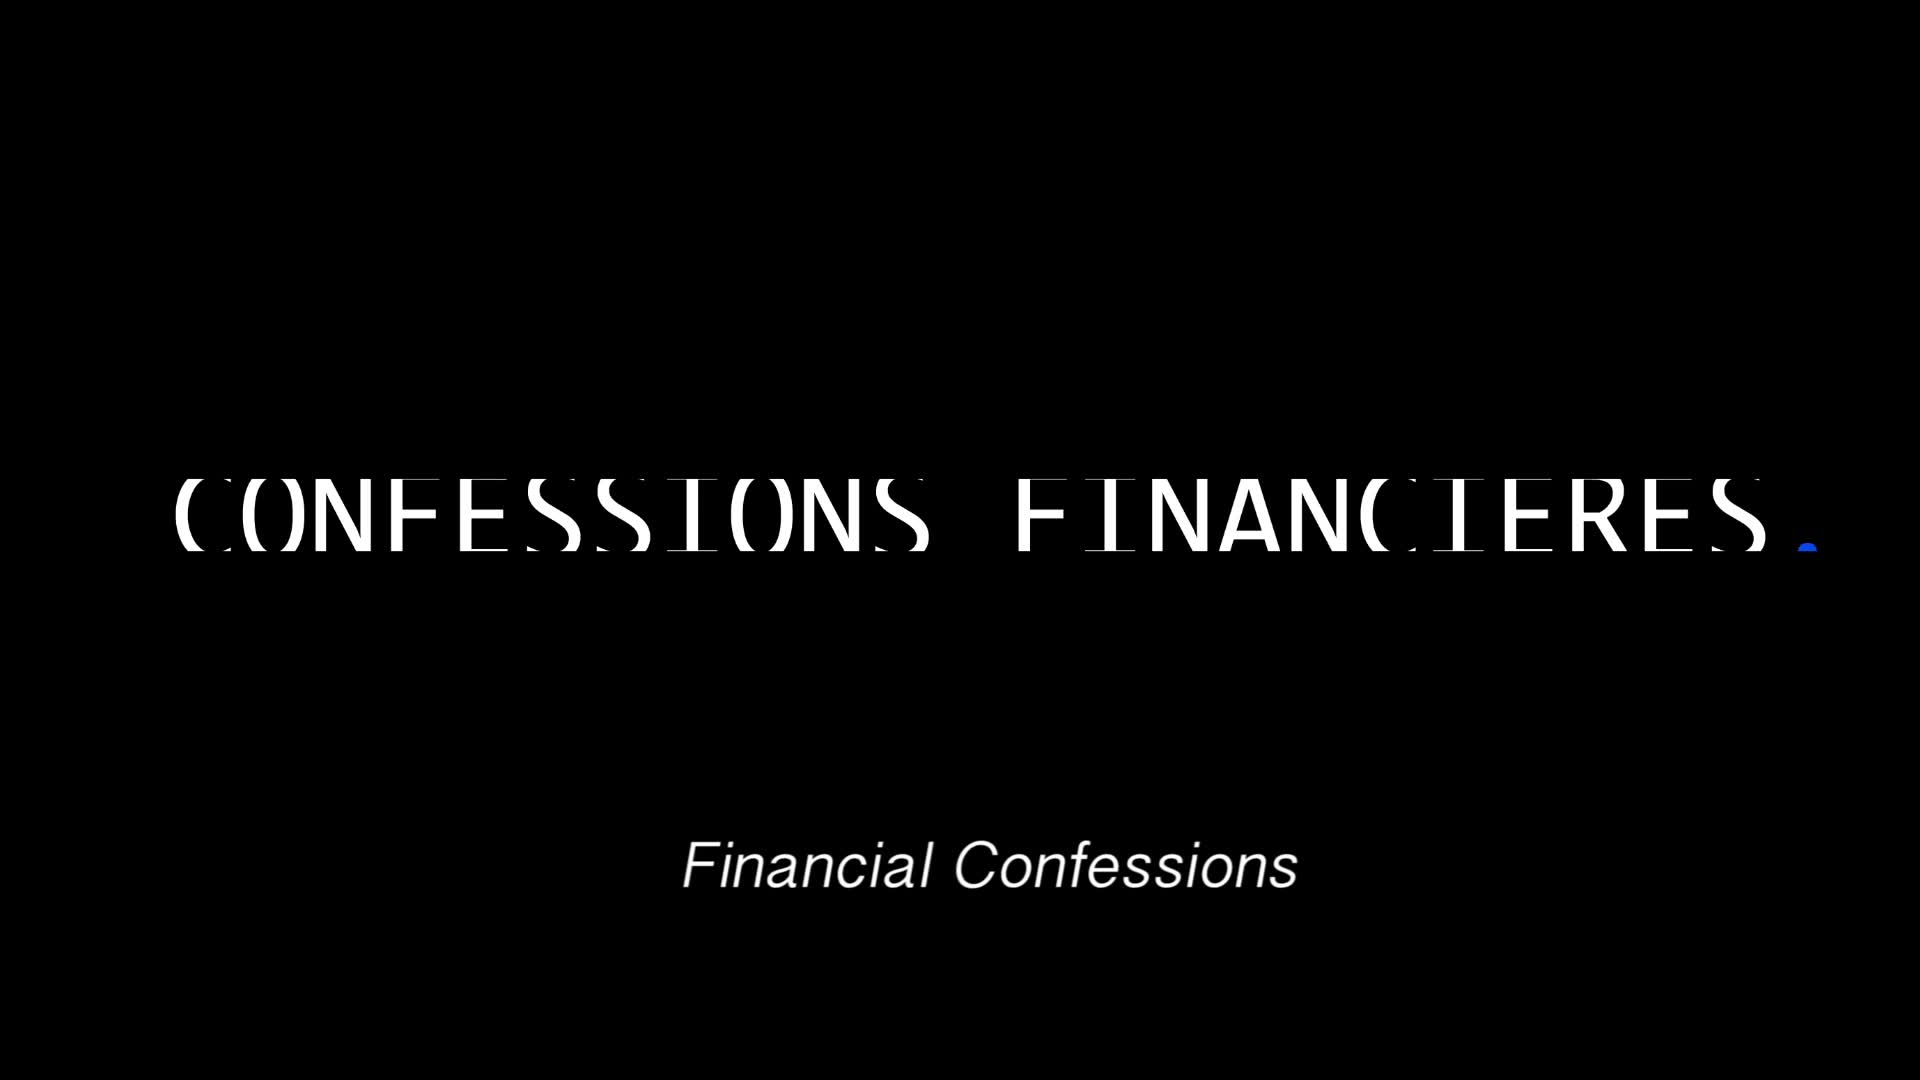 Financial confessions